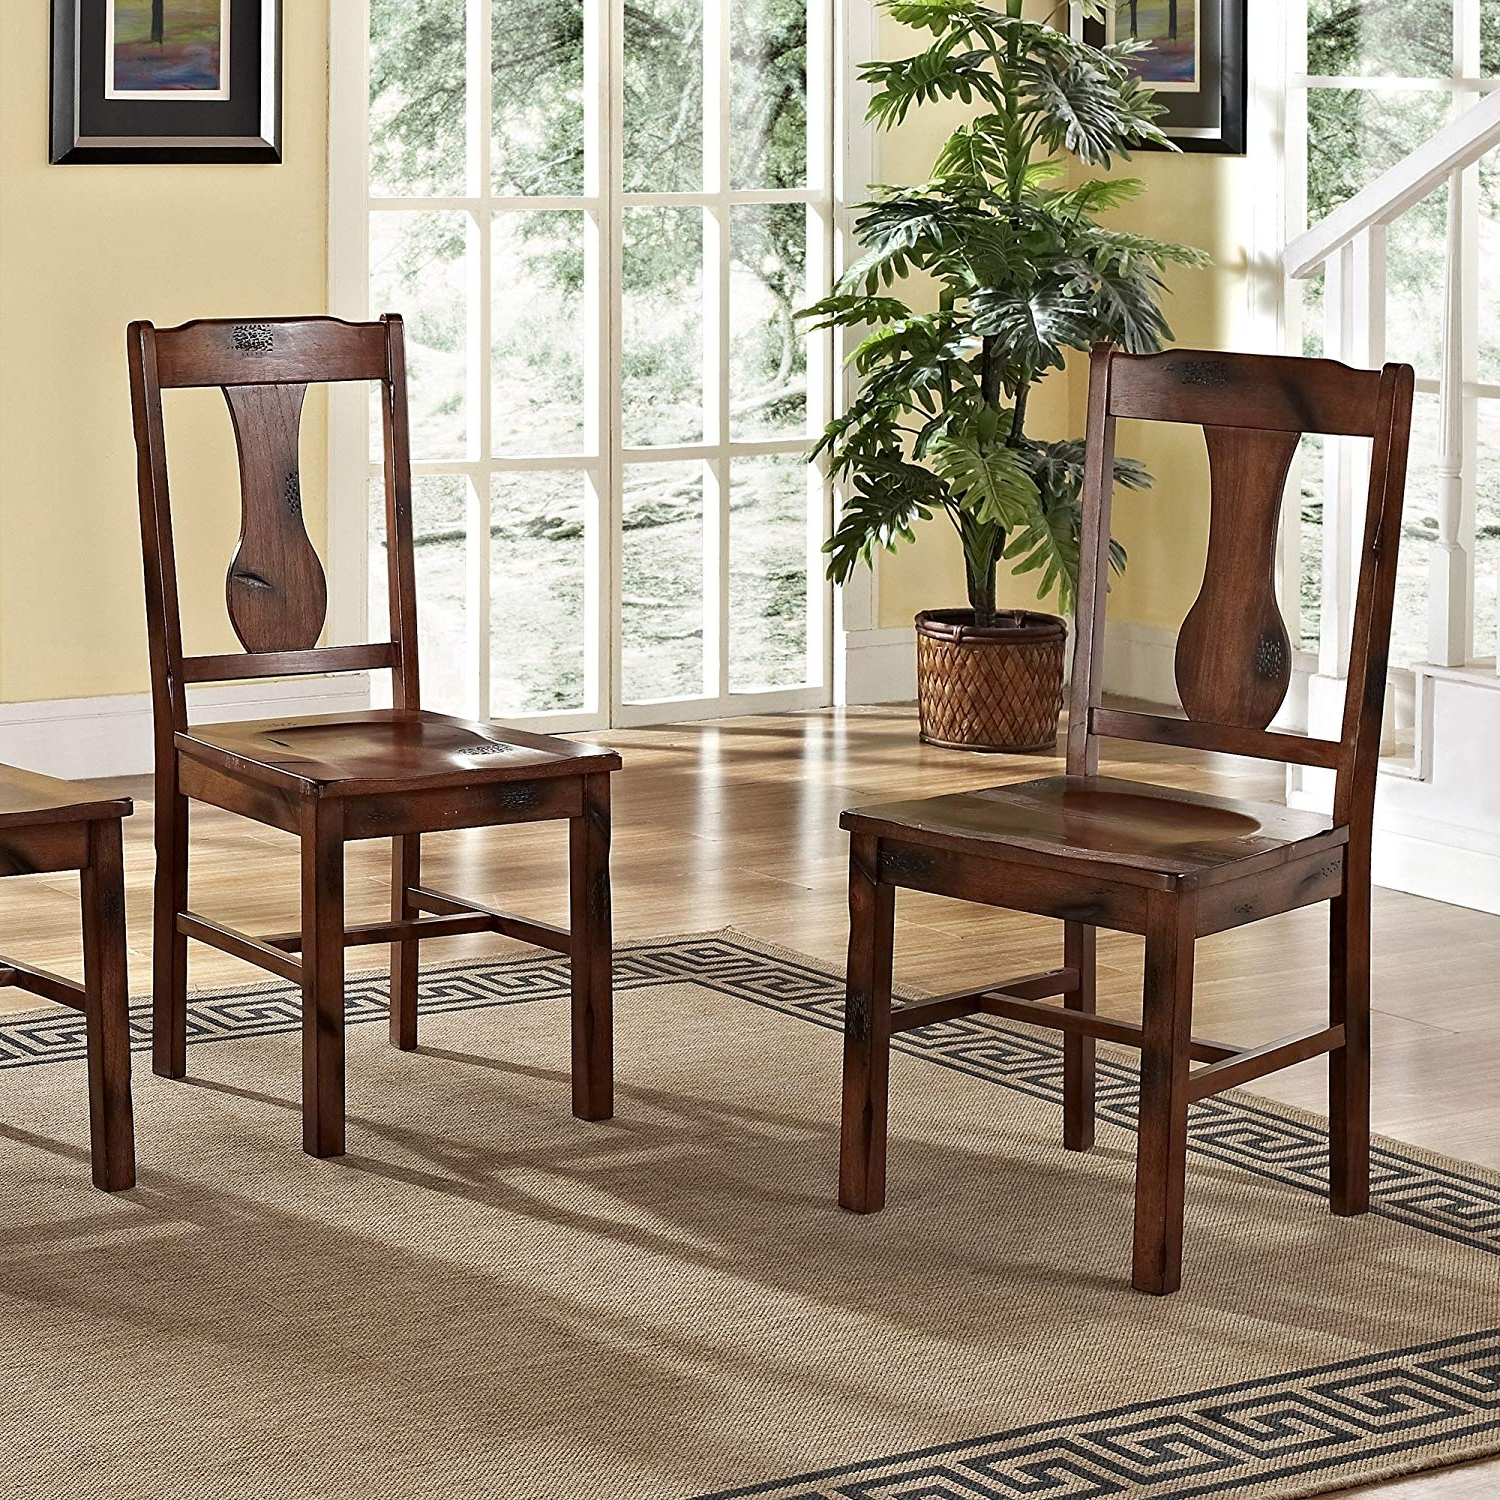 Oak Dining Sets Inside Preferred Amazon – Solid Wood Dark Oak Dining Chairs, Set Of 2 – Chairs (View 15 of 25)